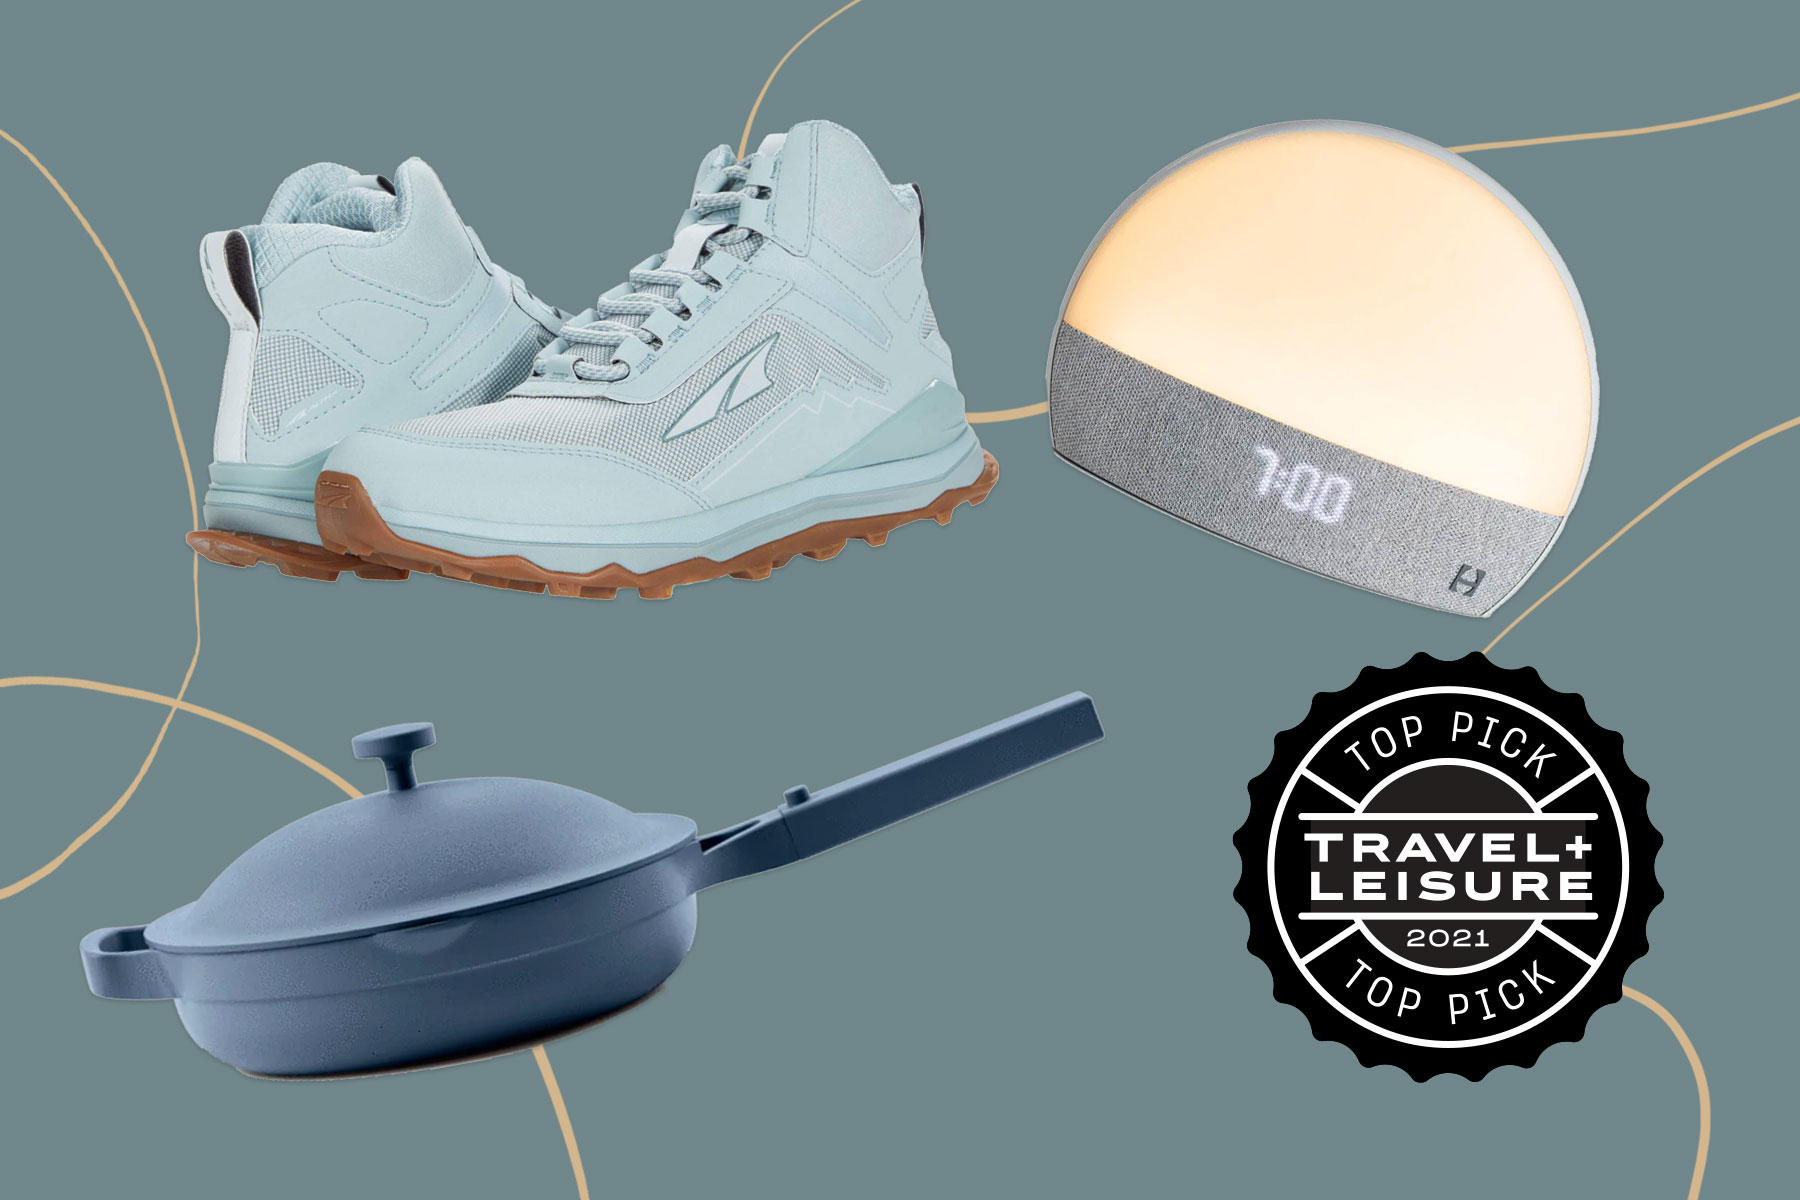 Hiking boots, alarm clock, pan with lid